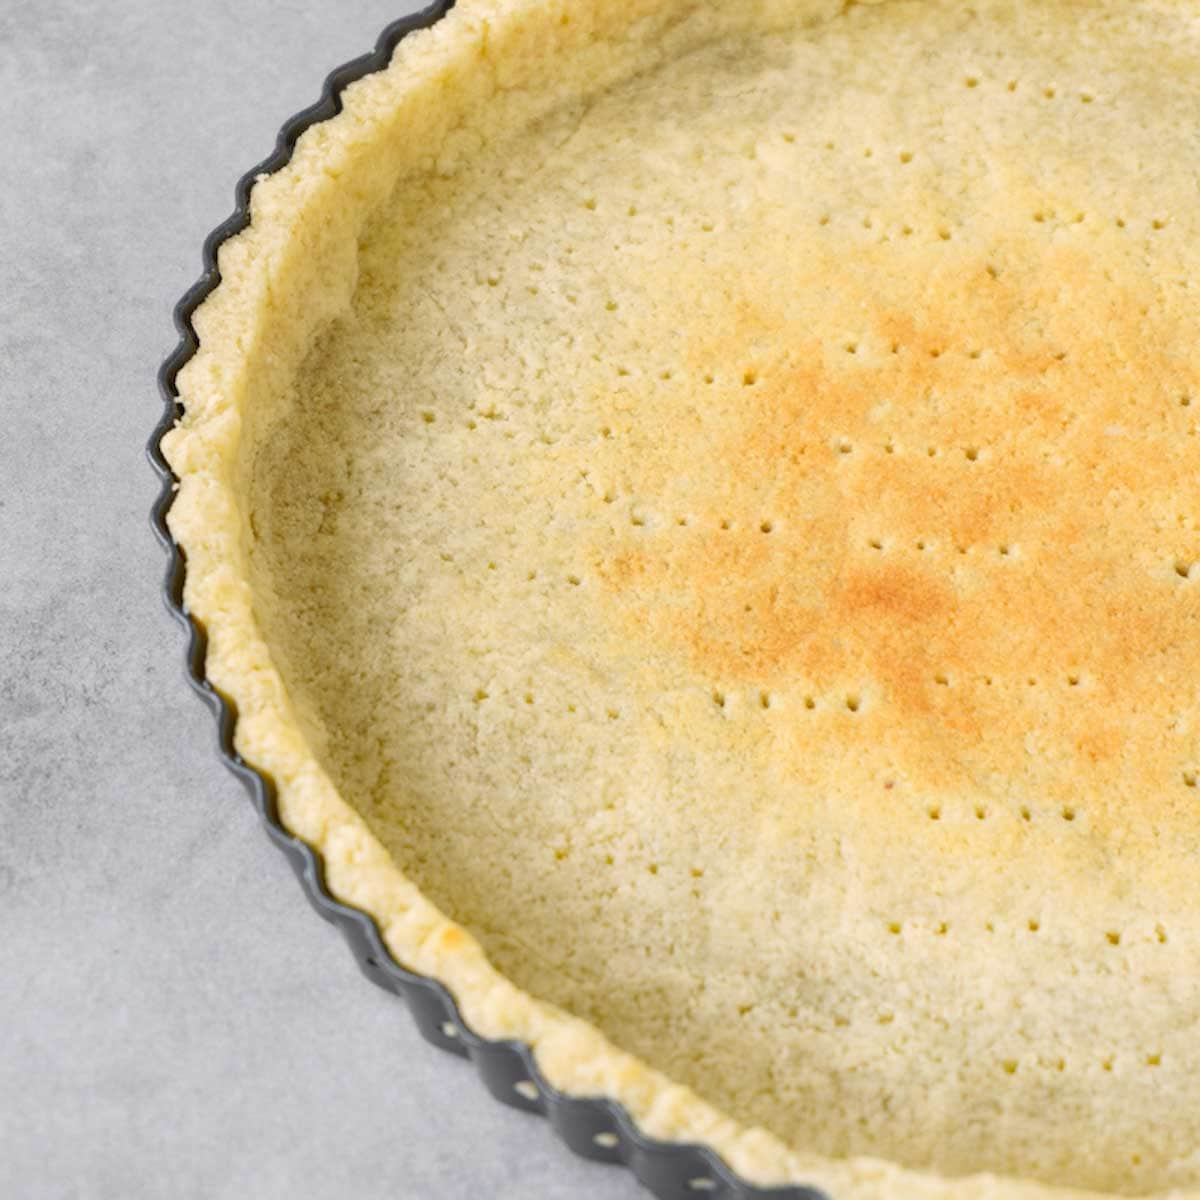 Close up picture of partially blind baked keto pie crust, the base pricked with a fork, in a tart pan lying on a grey working surface.